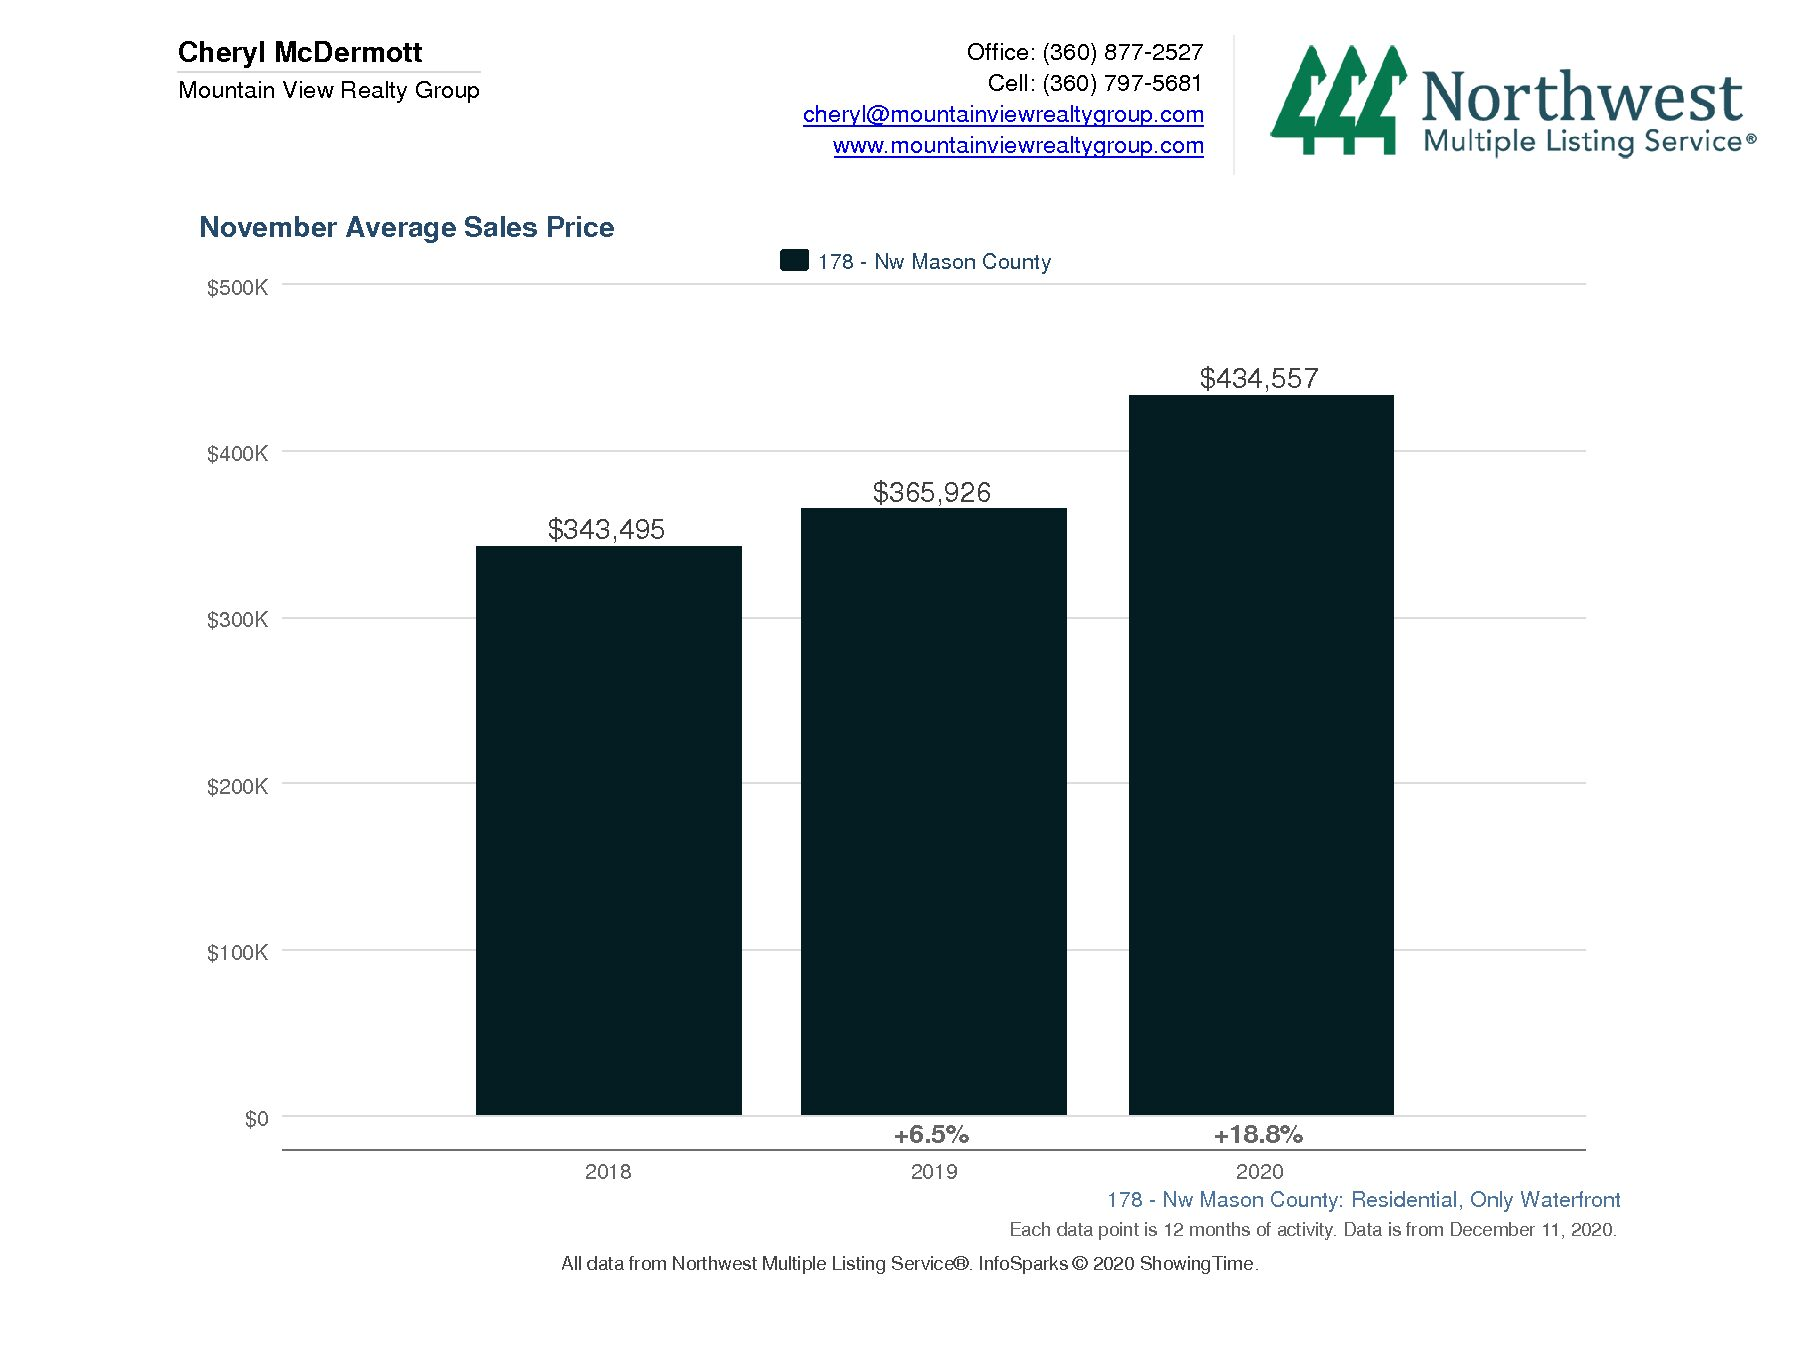 Hood Canal Waterfront Average Home Price for November